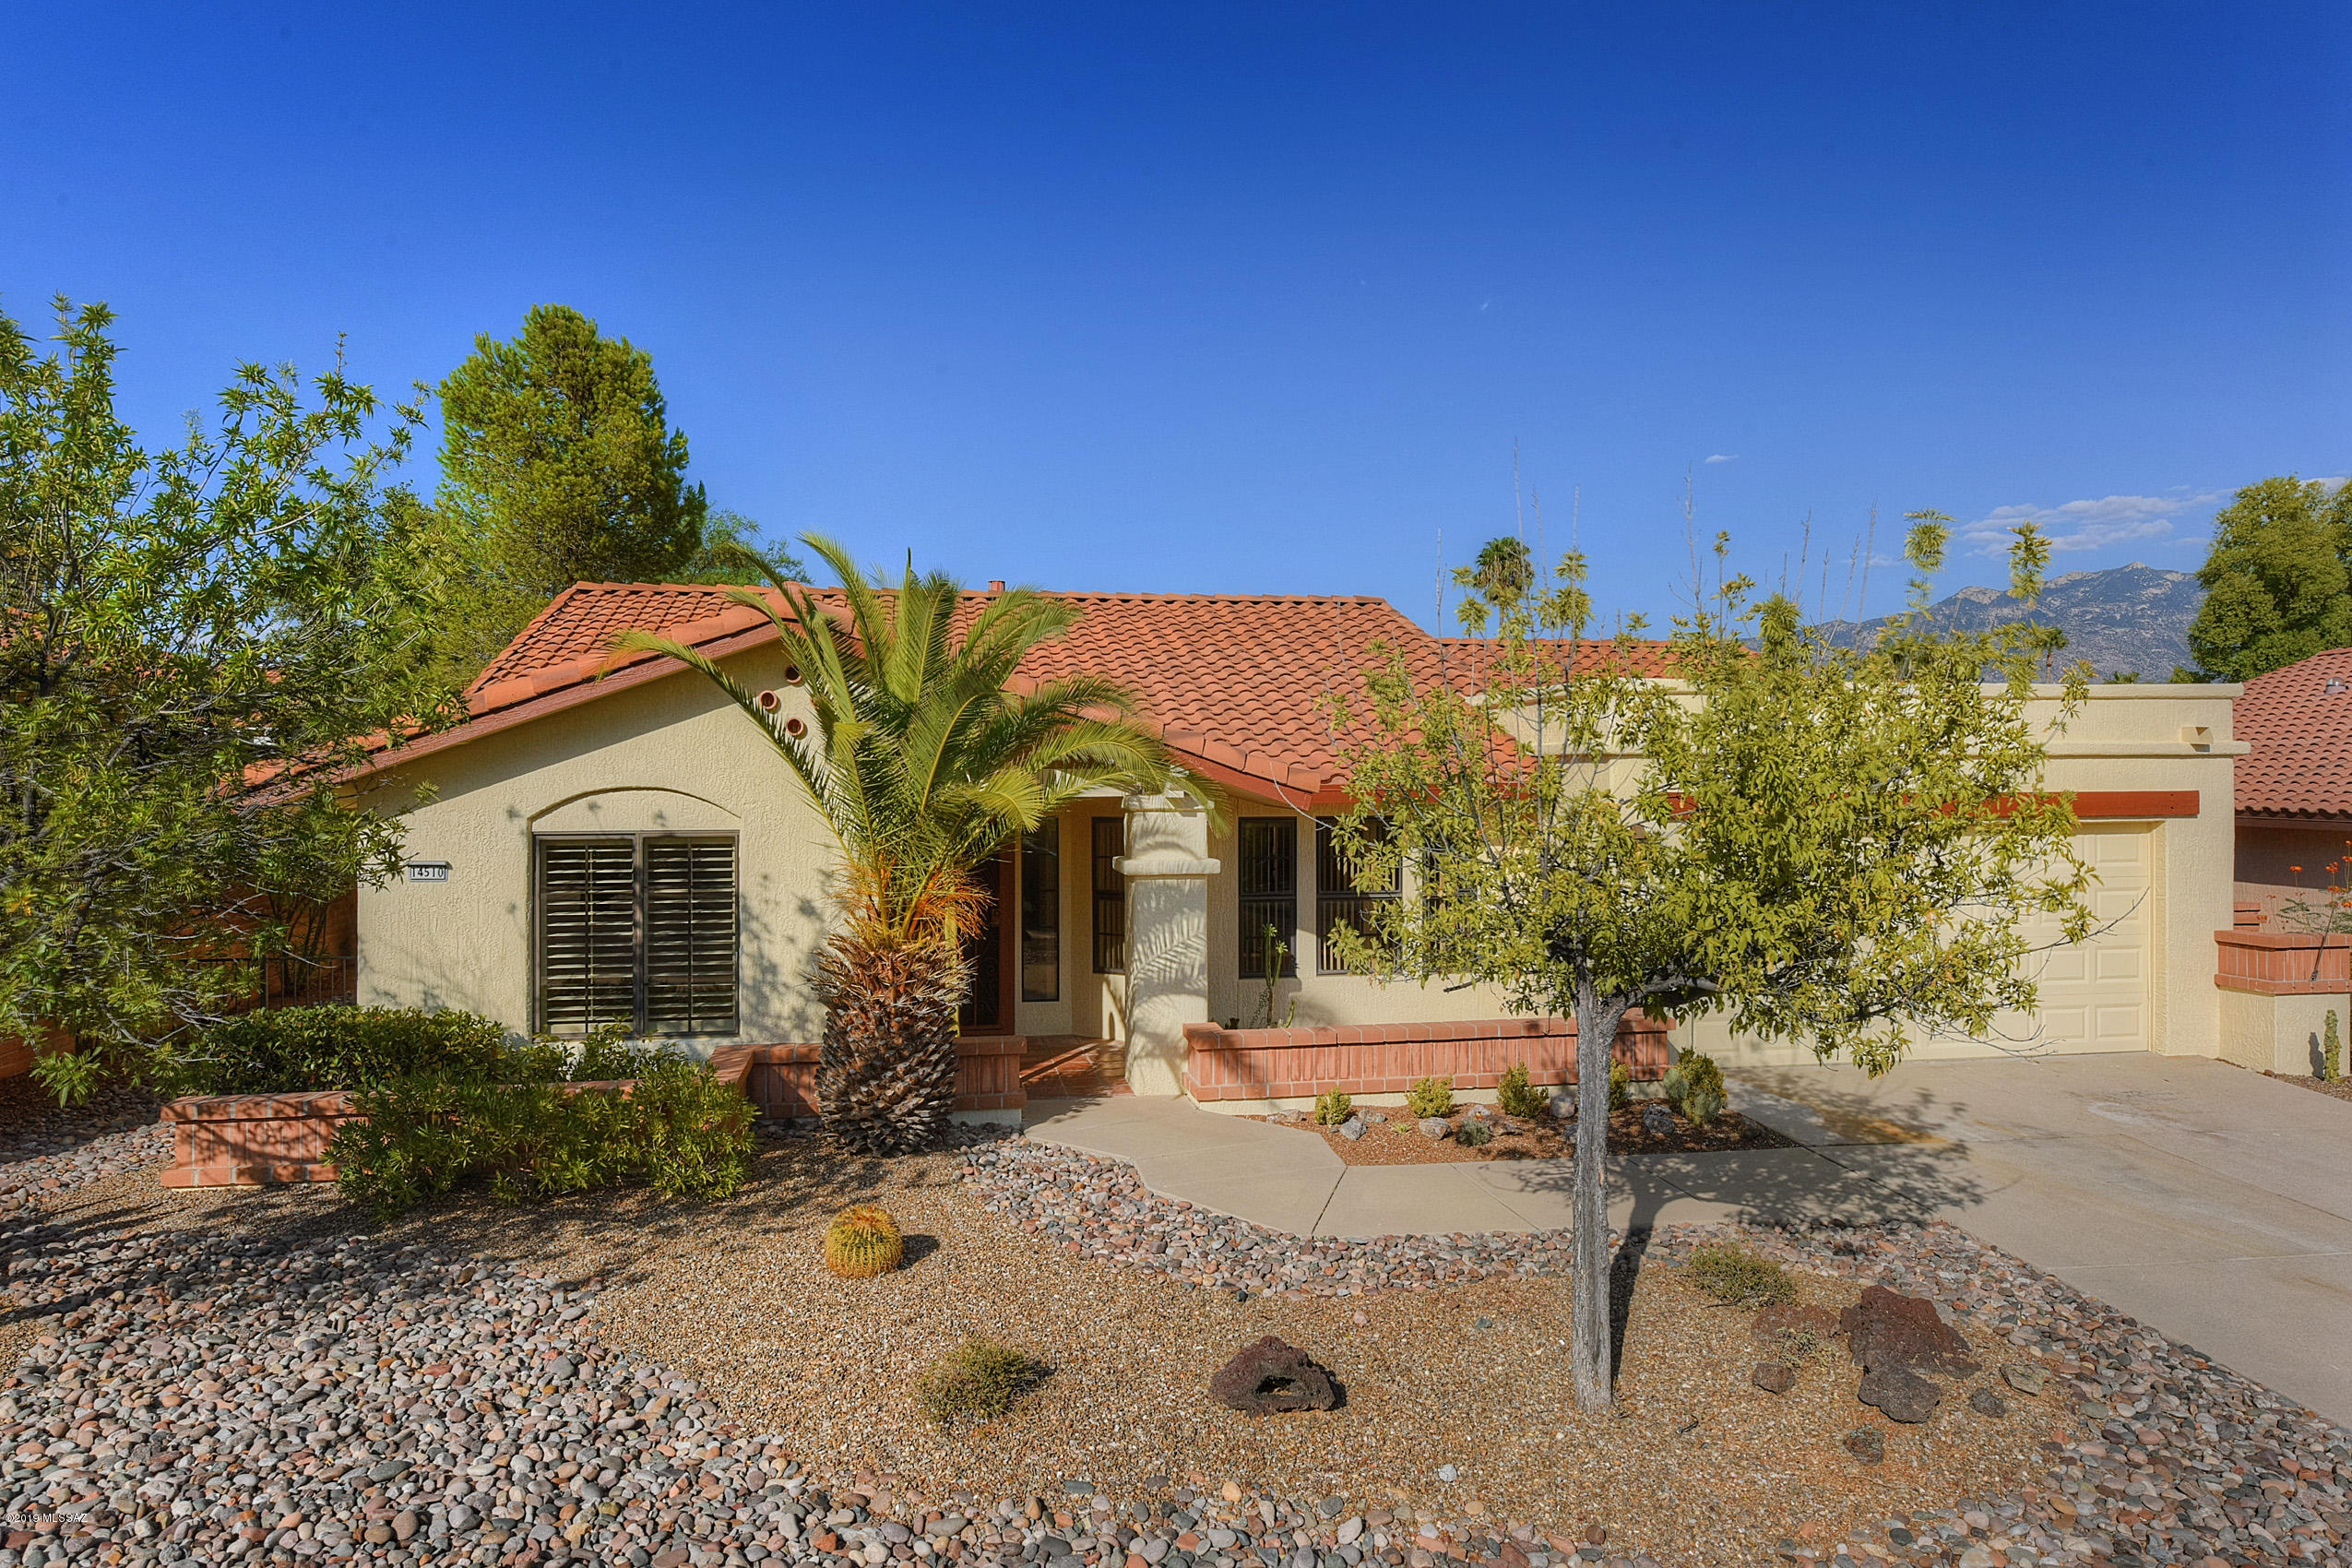 Tucson Active Adult Real Estate | Retirement / Active Adult